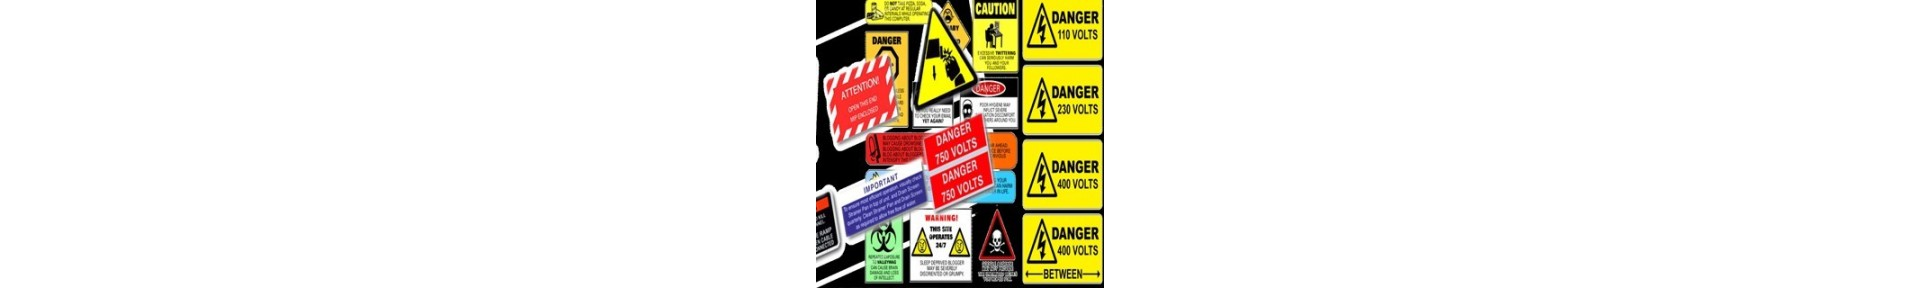 Safety Labels & Signs – Premium ISO Warning Labels and Signs